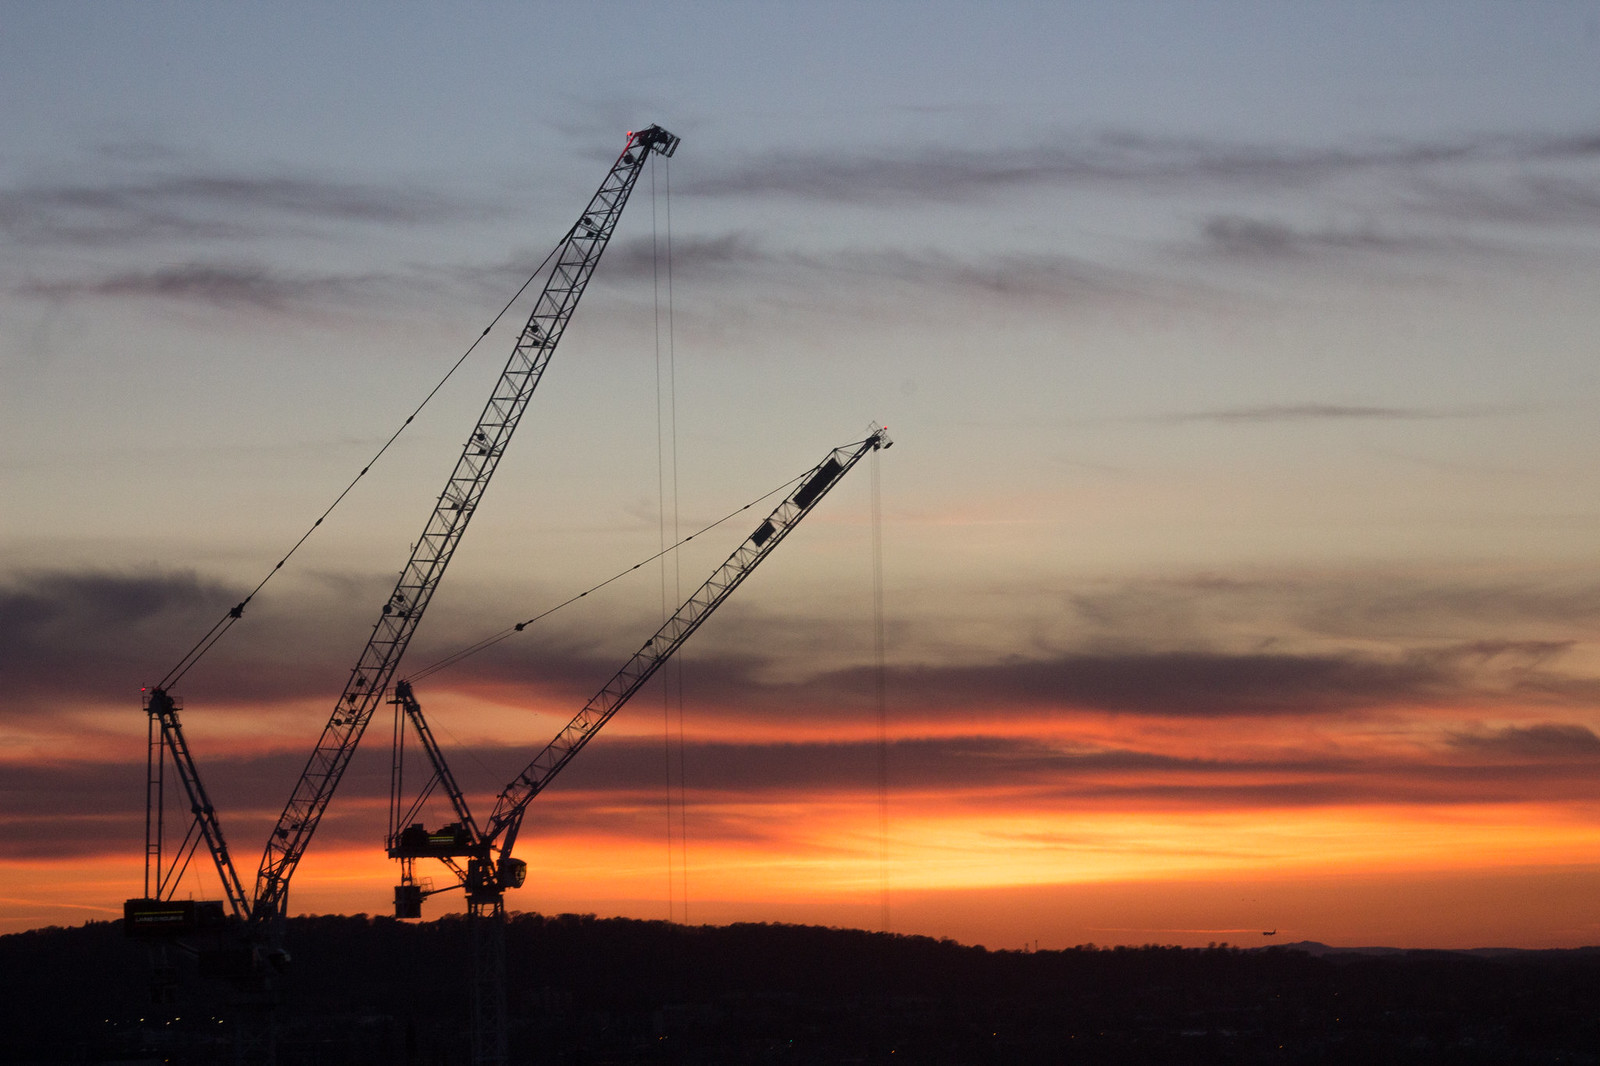 Silhouettes of cranes against the sunset in Edinburgh